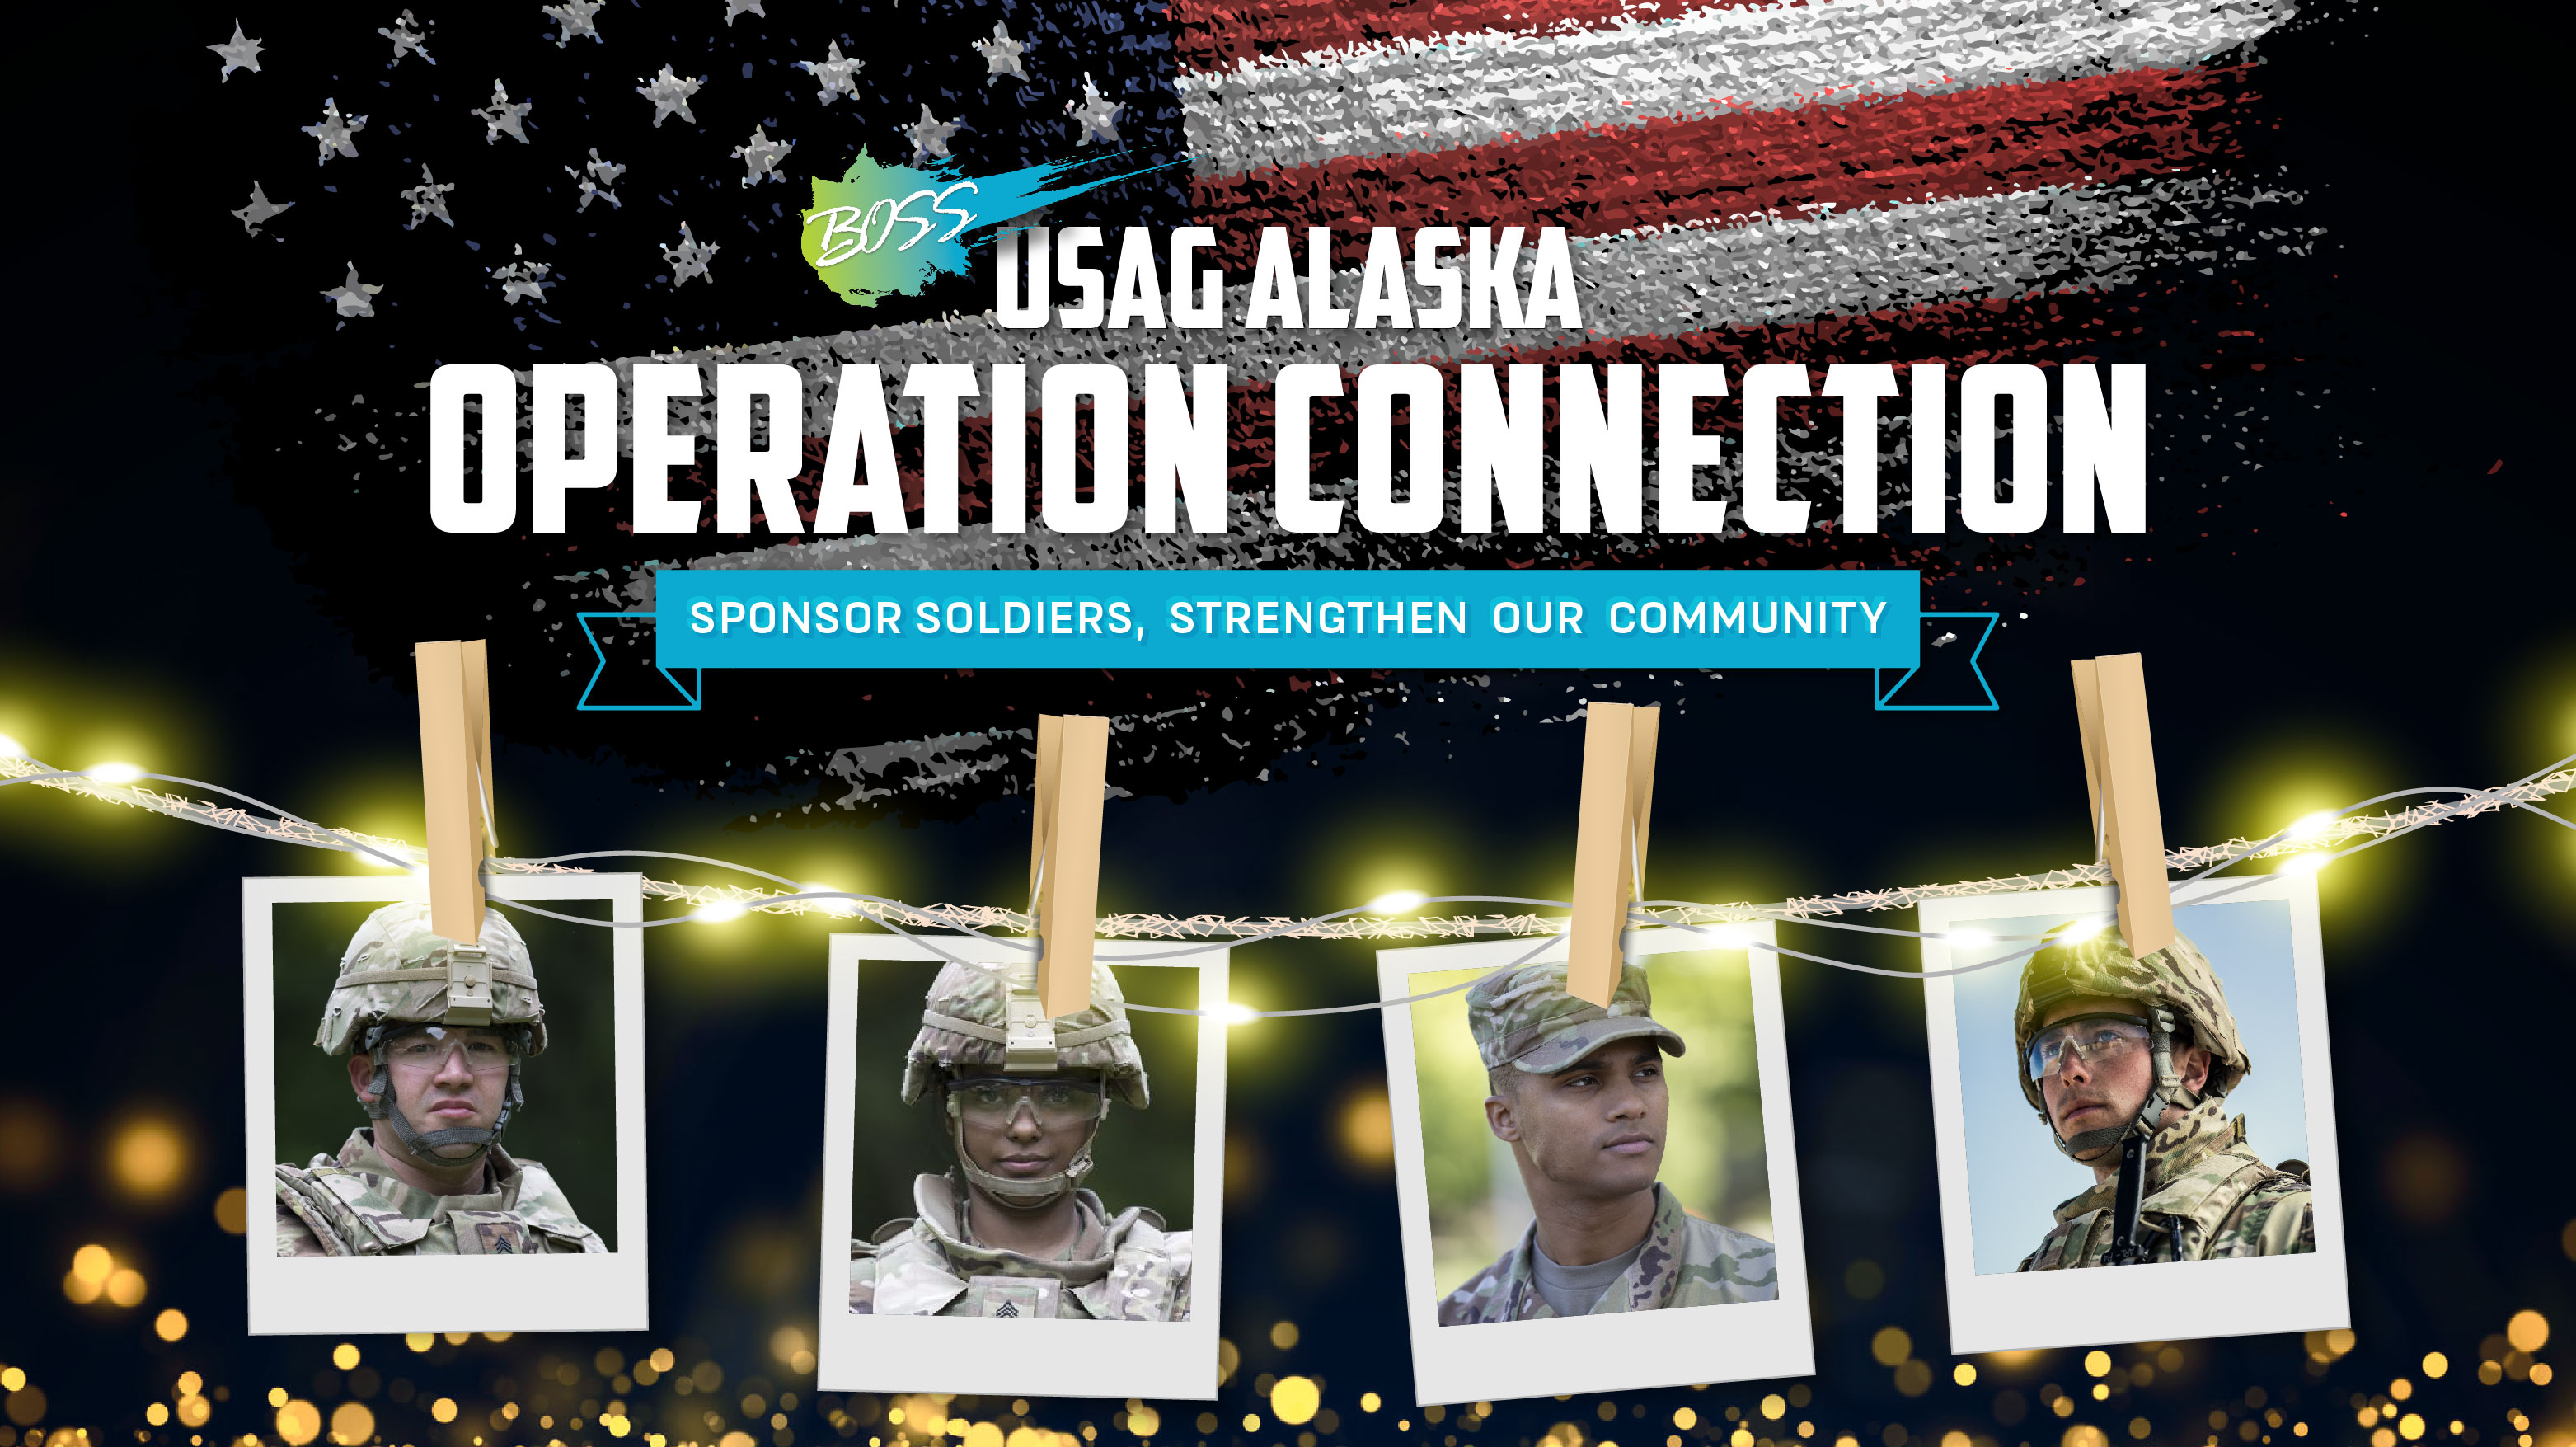 USAG Alaska Operation Connection: Sponsor Soldiers, Strengthen Our Community